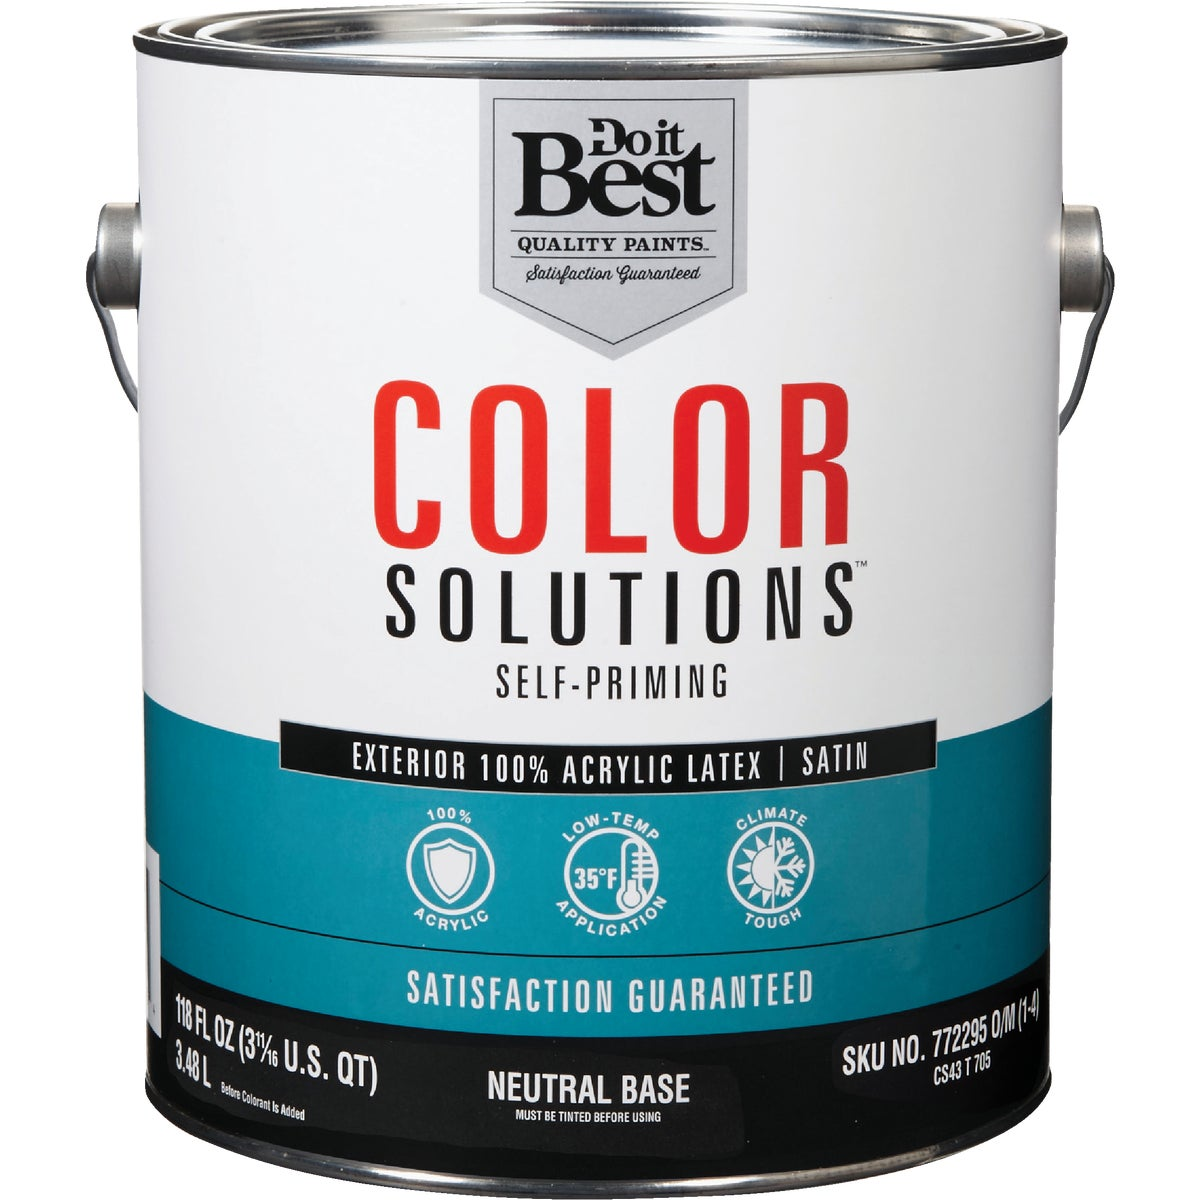 EXT SAT NEUTRAL BS PAINT - CS43T0705-16 by Do it Best